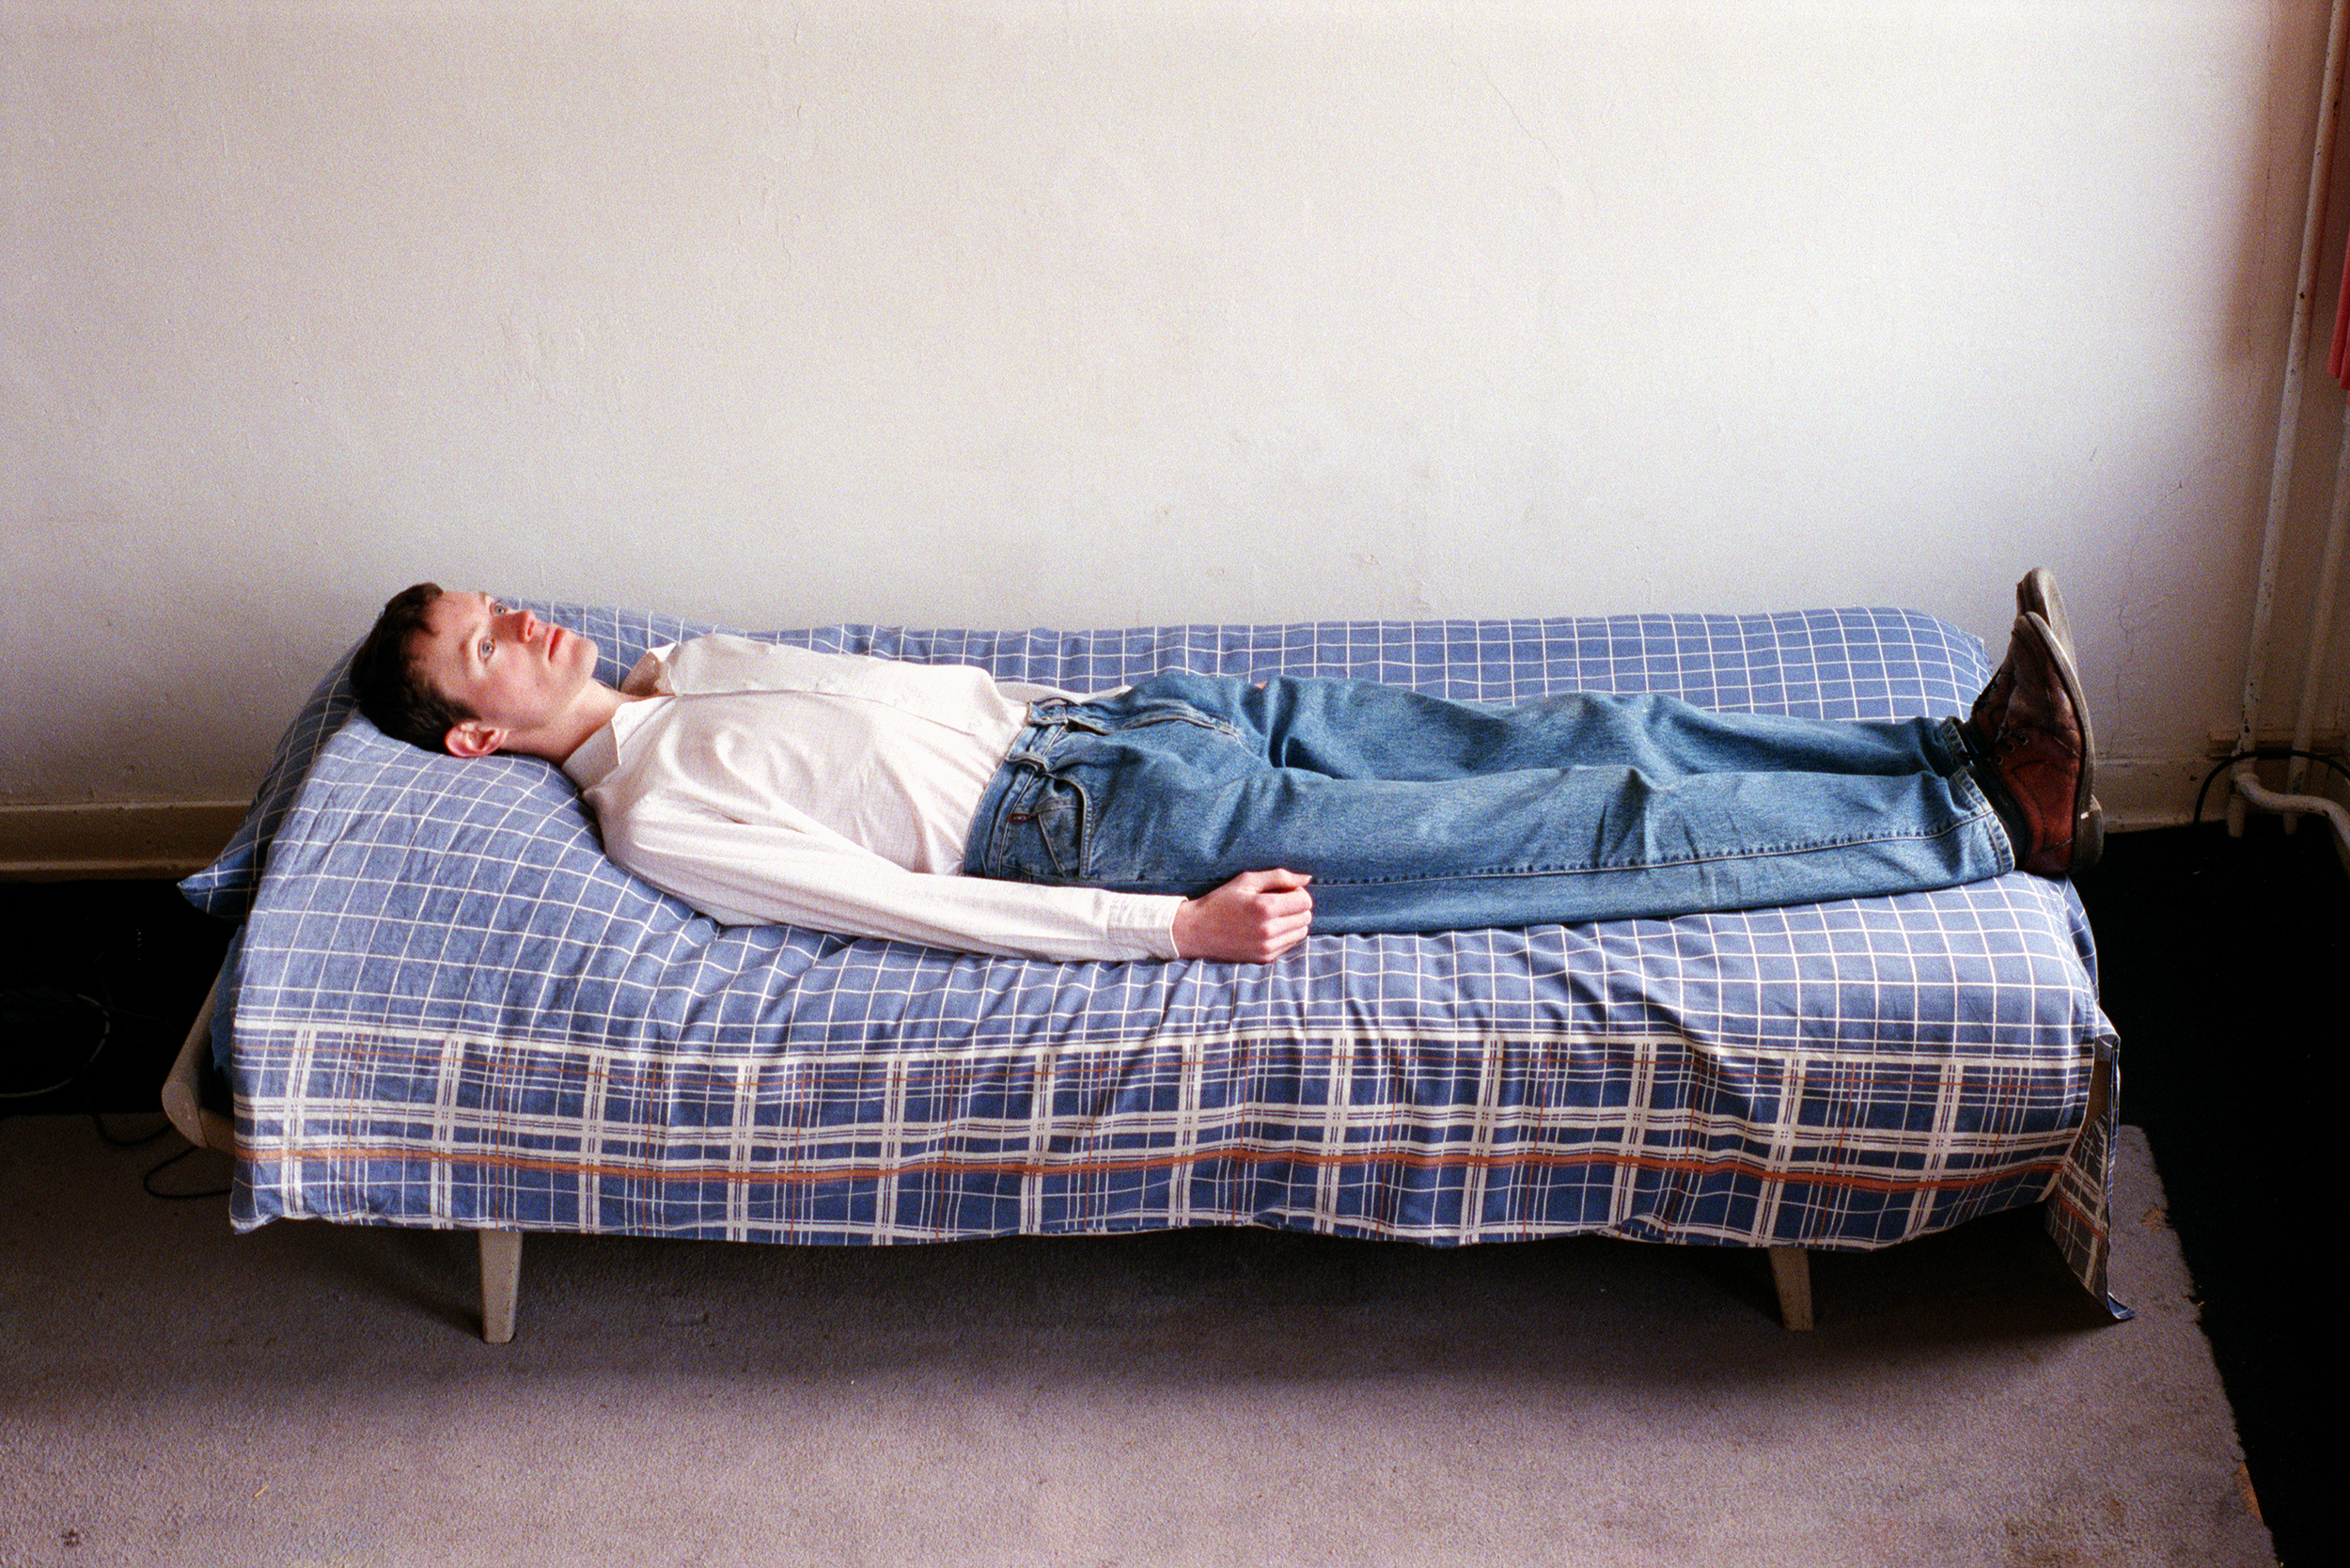 Self-portrait on Bed II, photograph by Wouter van Riessen